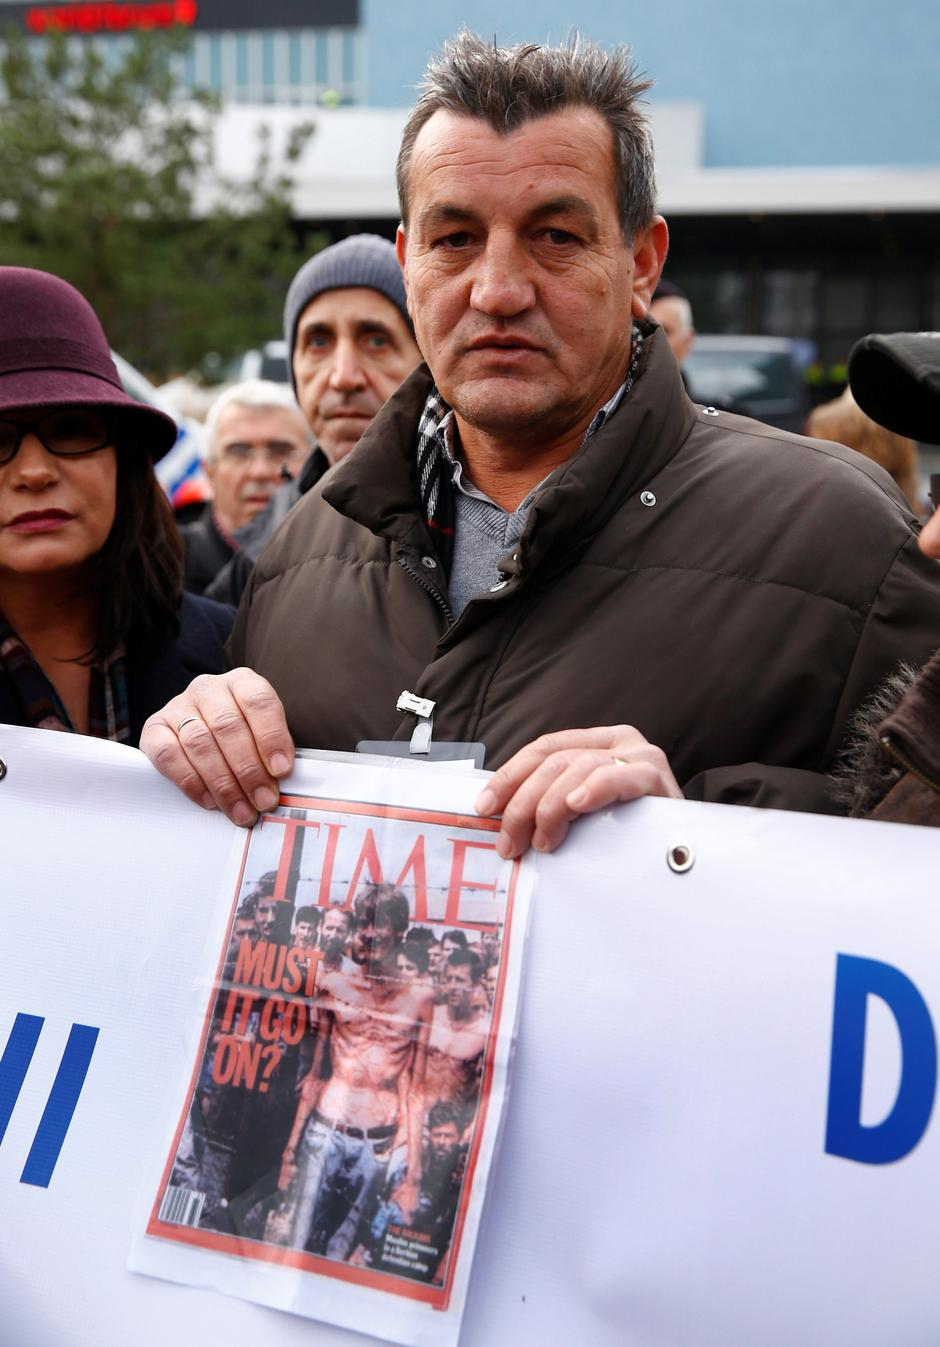 Fikret Alic, one of the survivors of concentration camps shows his photo on the cover of Time before the trial of former Bosnian Serb military commander Ratko Mladic before a court at the International Criminal Tribunal for the former Yugoslavia (ICTY) in | Autor: MICHAEL KOOREN/REUTERS/PIXSELL/REUTERS/PIXSELL